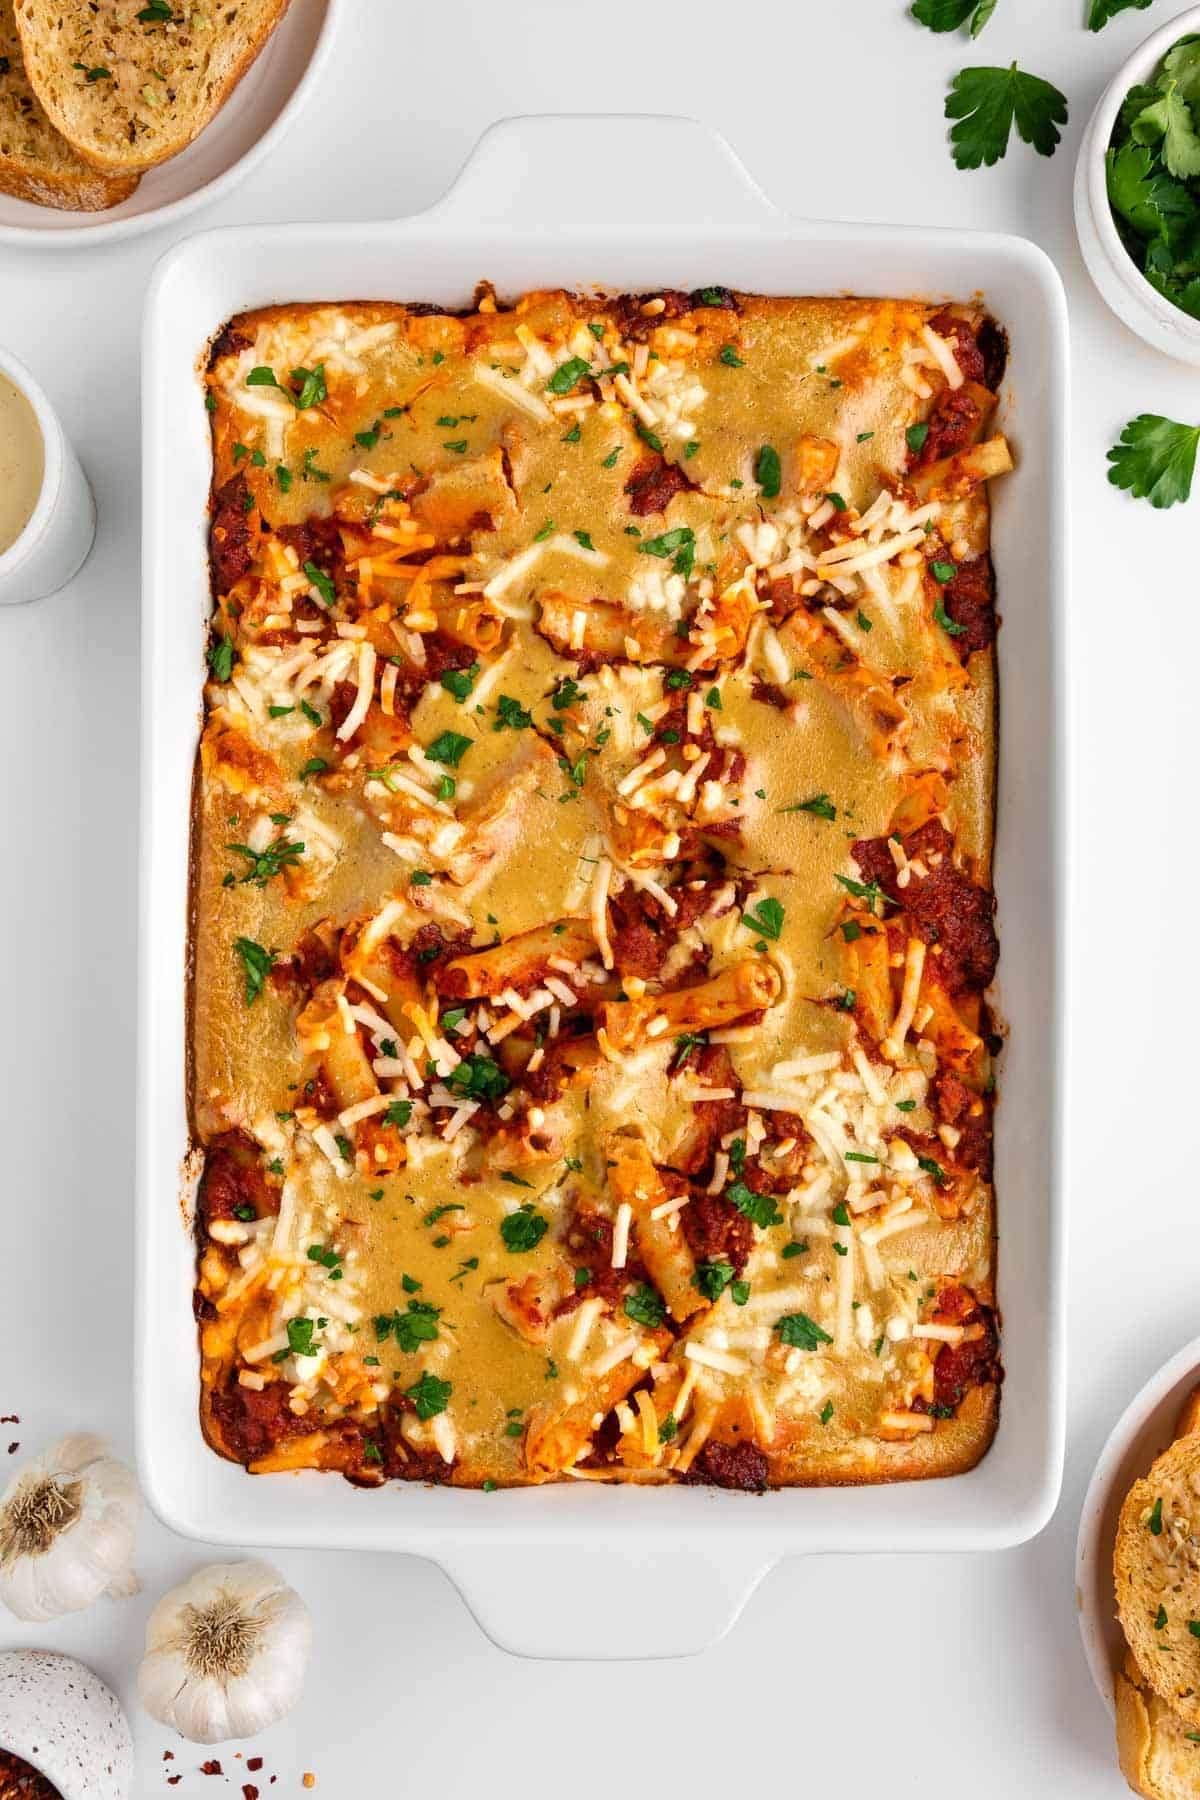 vegan baked ziti inside a white casserole dish surrounded by garlic cloves, fresh parsley, and garlic bread